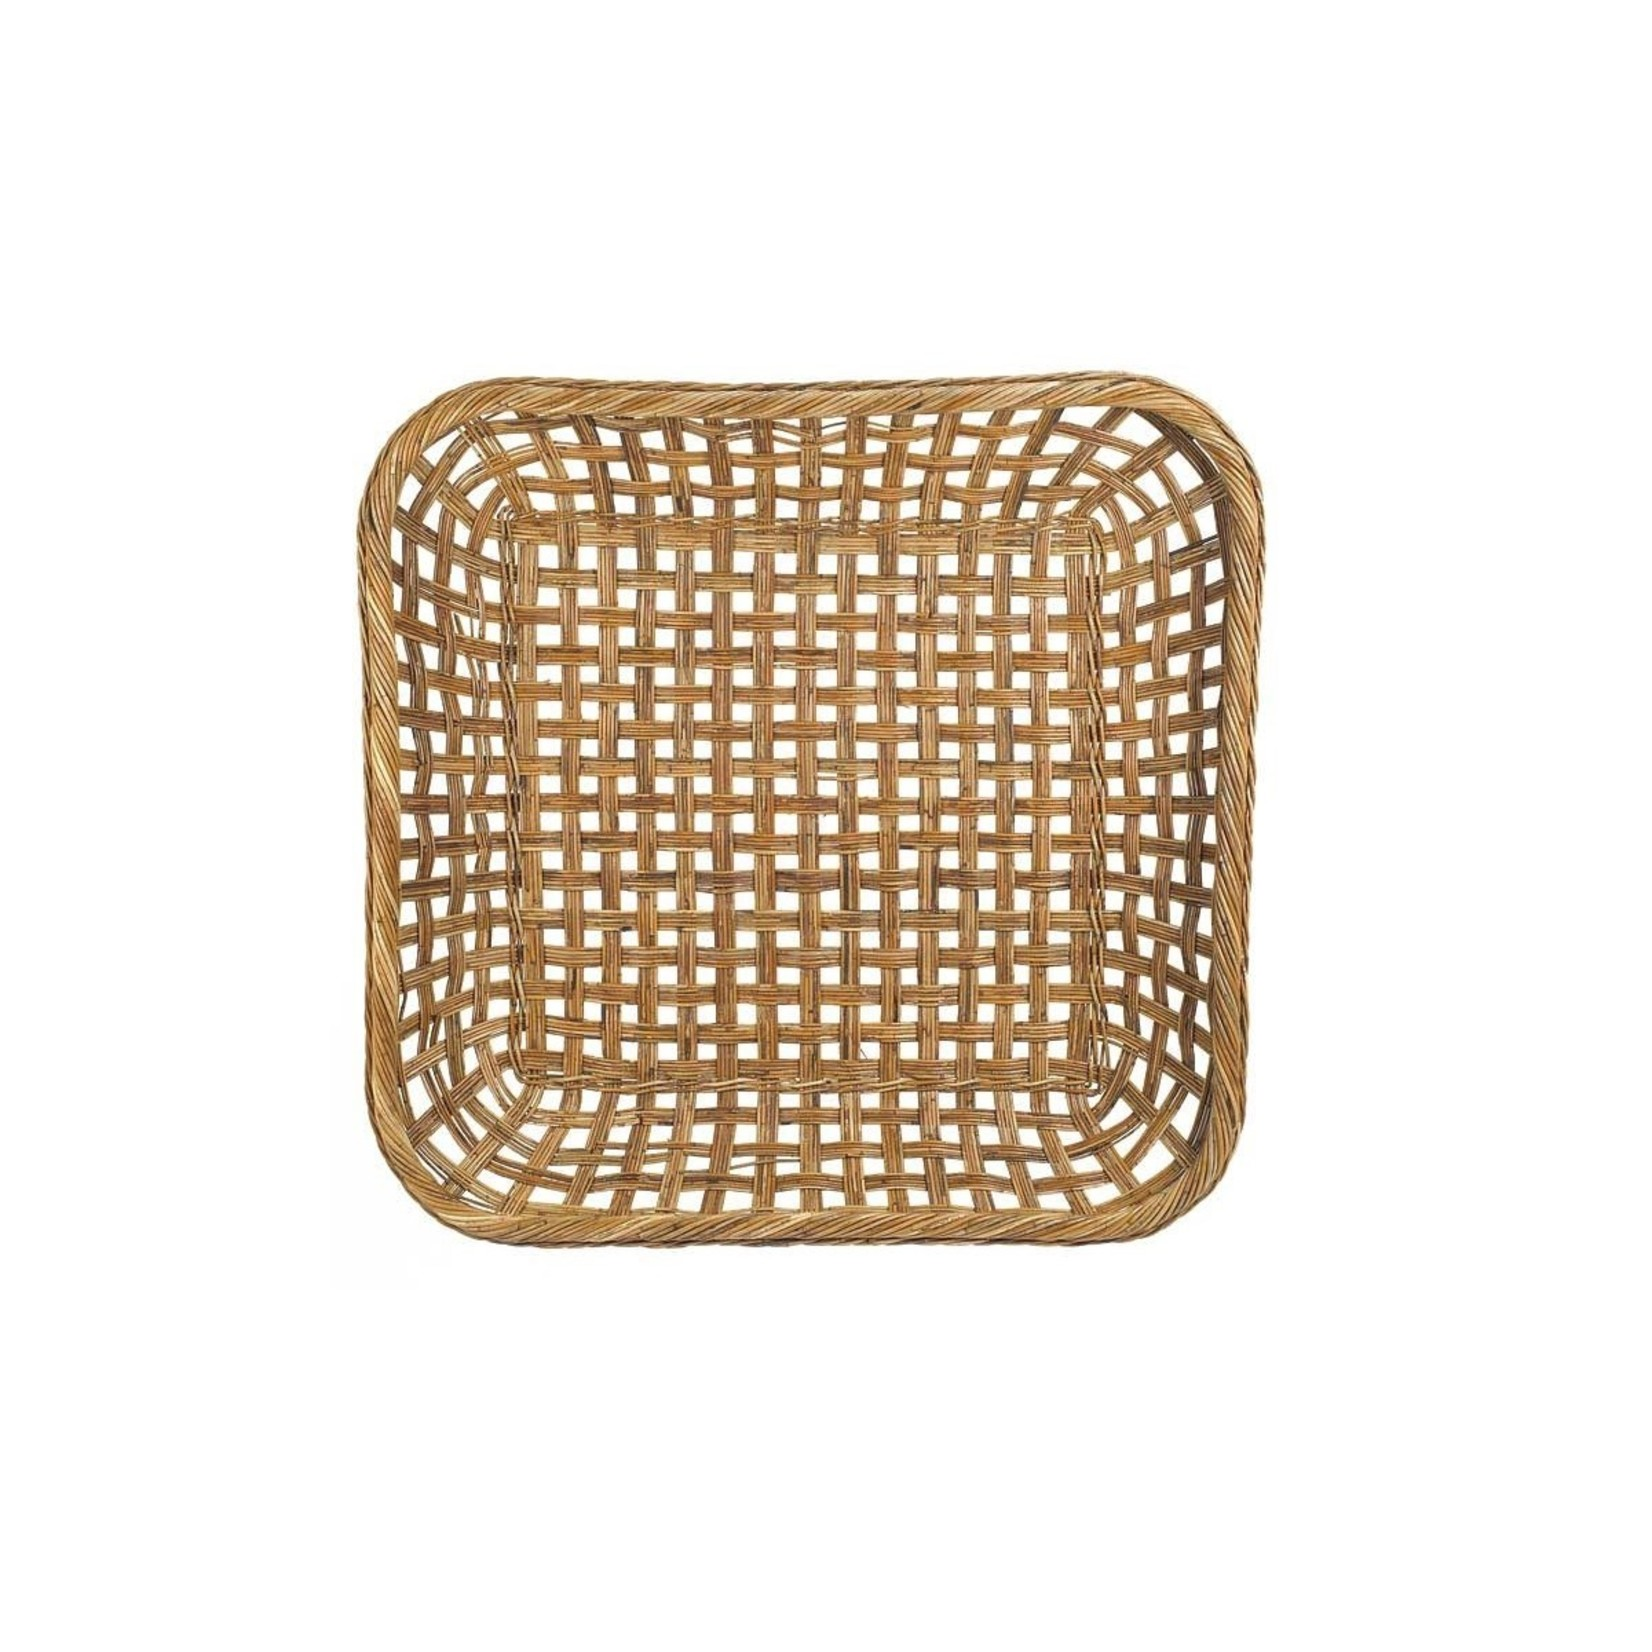 Mainly Baskets French Country Tray - Large